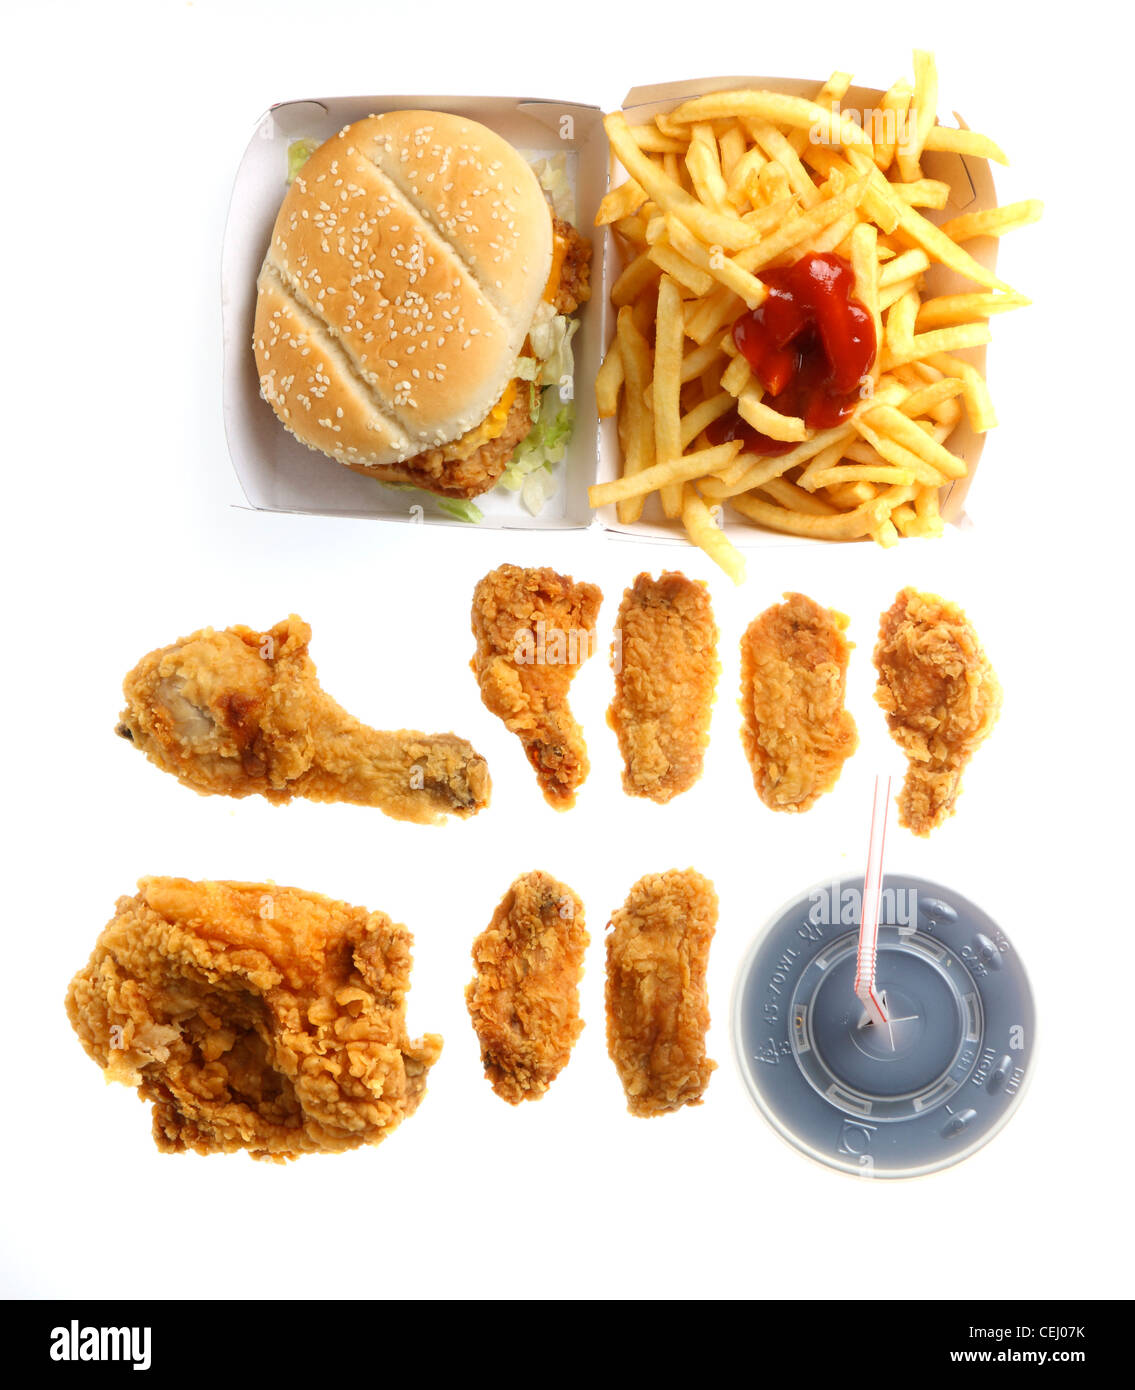 Kfc nutrition nutrition ftempo - Kentucky french chicken ...